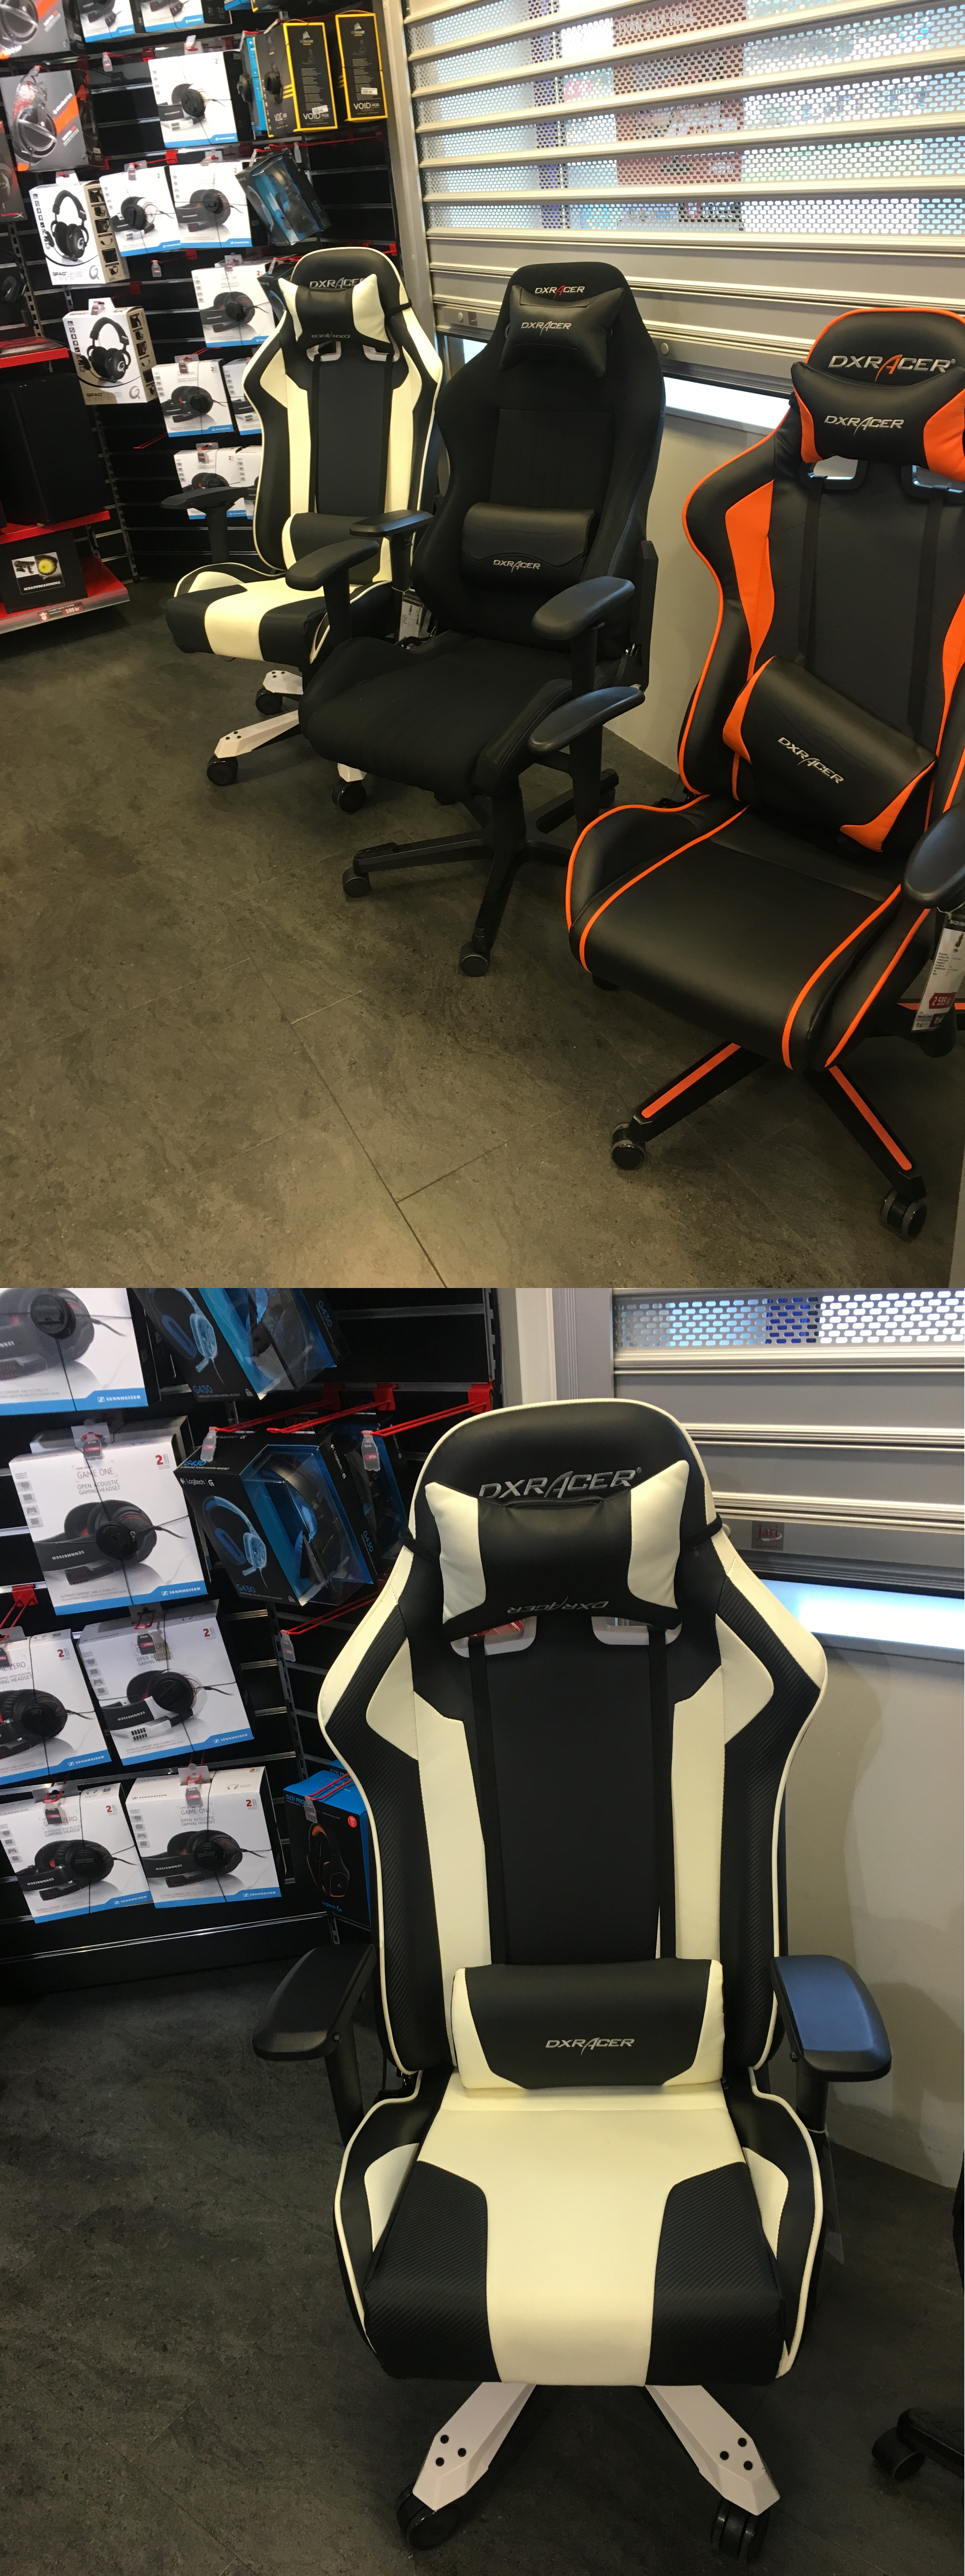 Terrific Computer Chairs For Gamers Dxracer Europe Official Caraccident5 Cool Chair Designs And Ideas Caraccident5Info